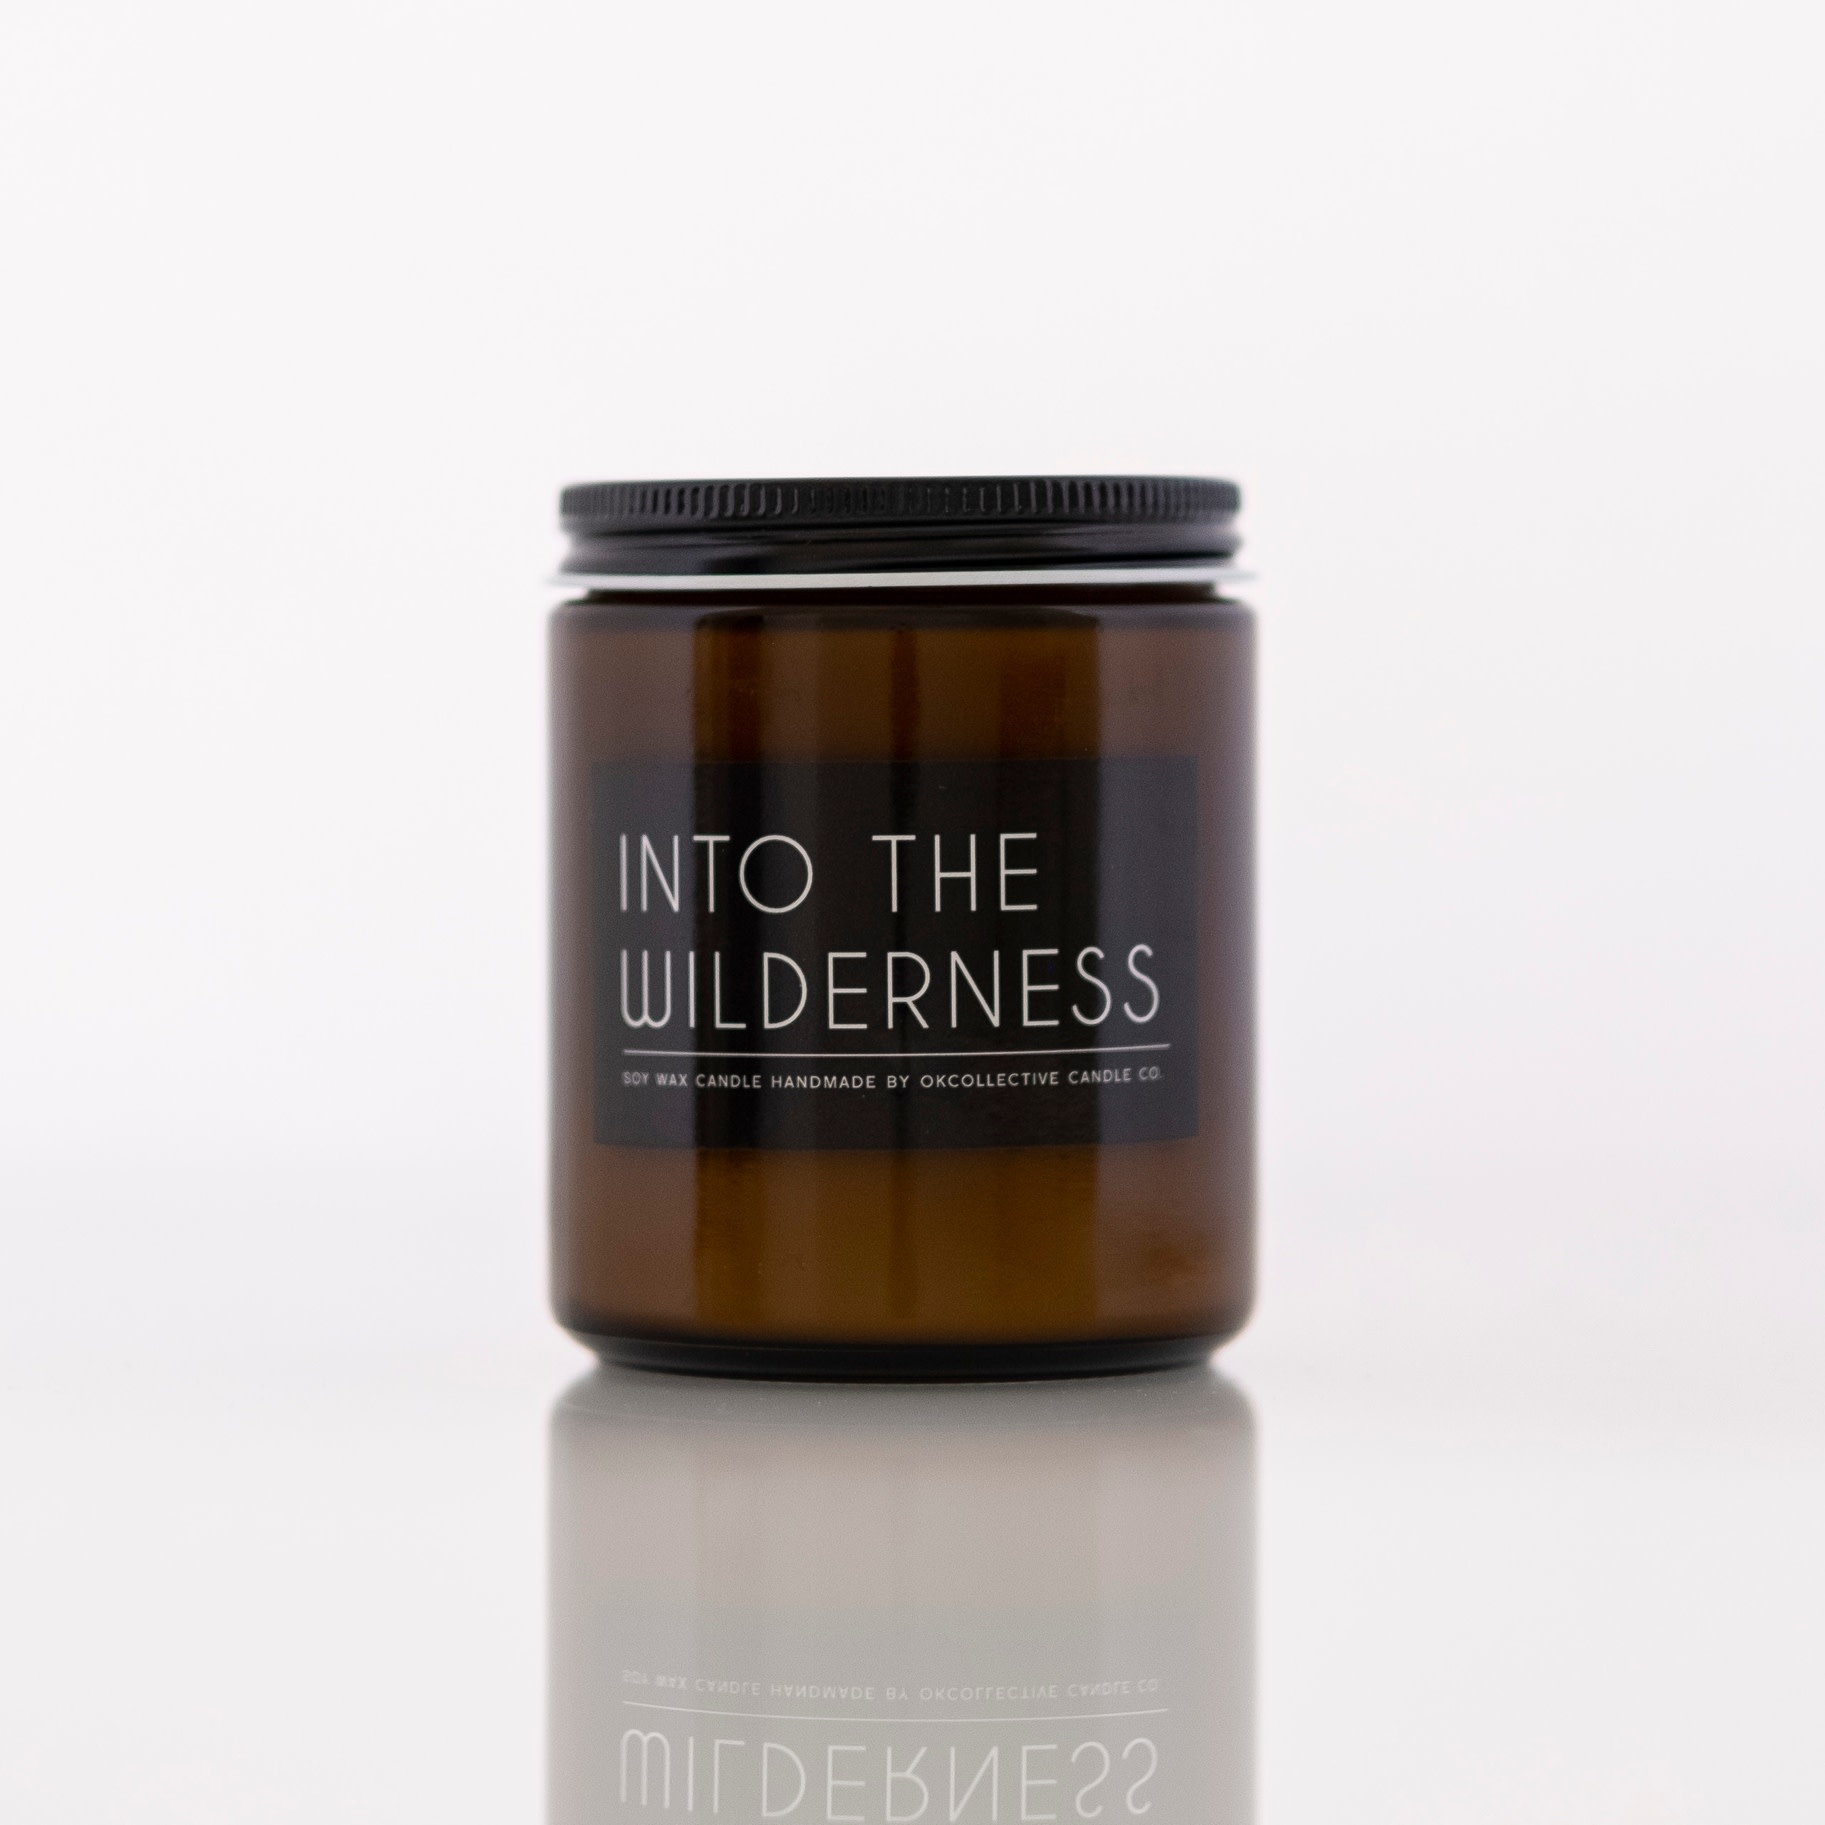 Into the Wilderness 8oz. Candle